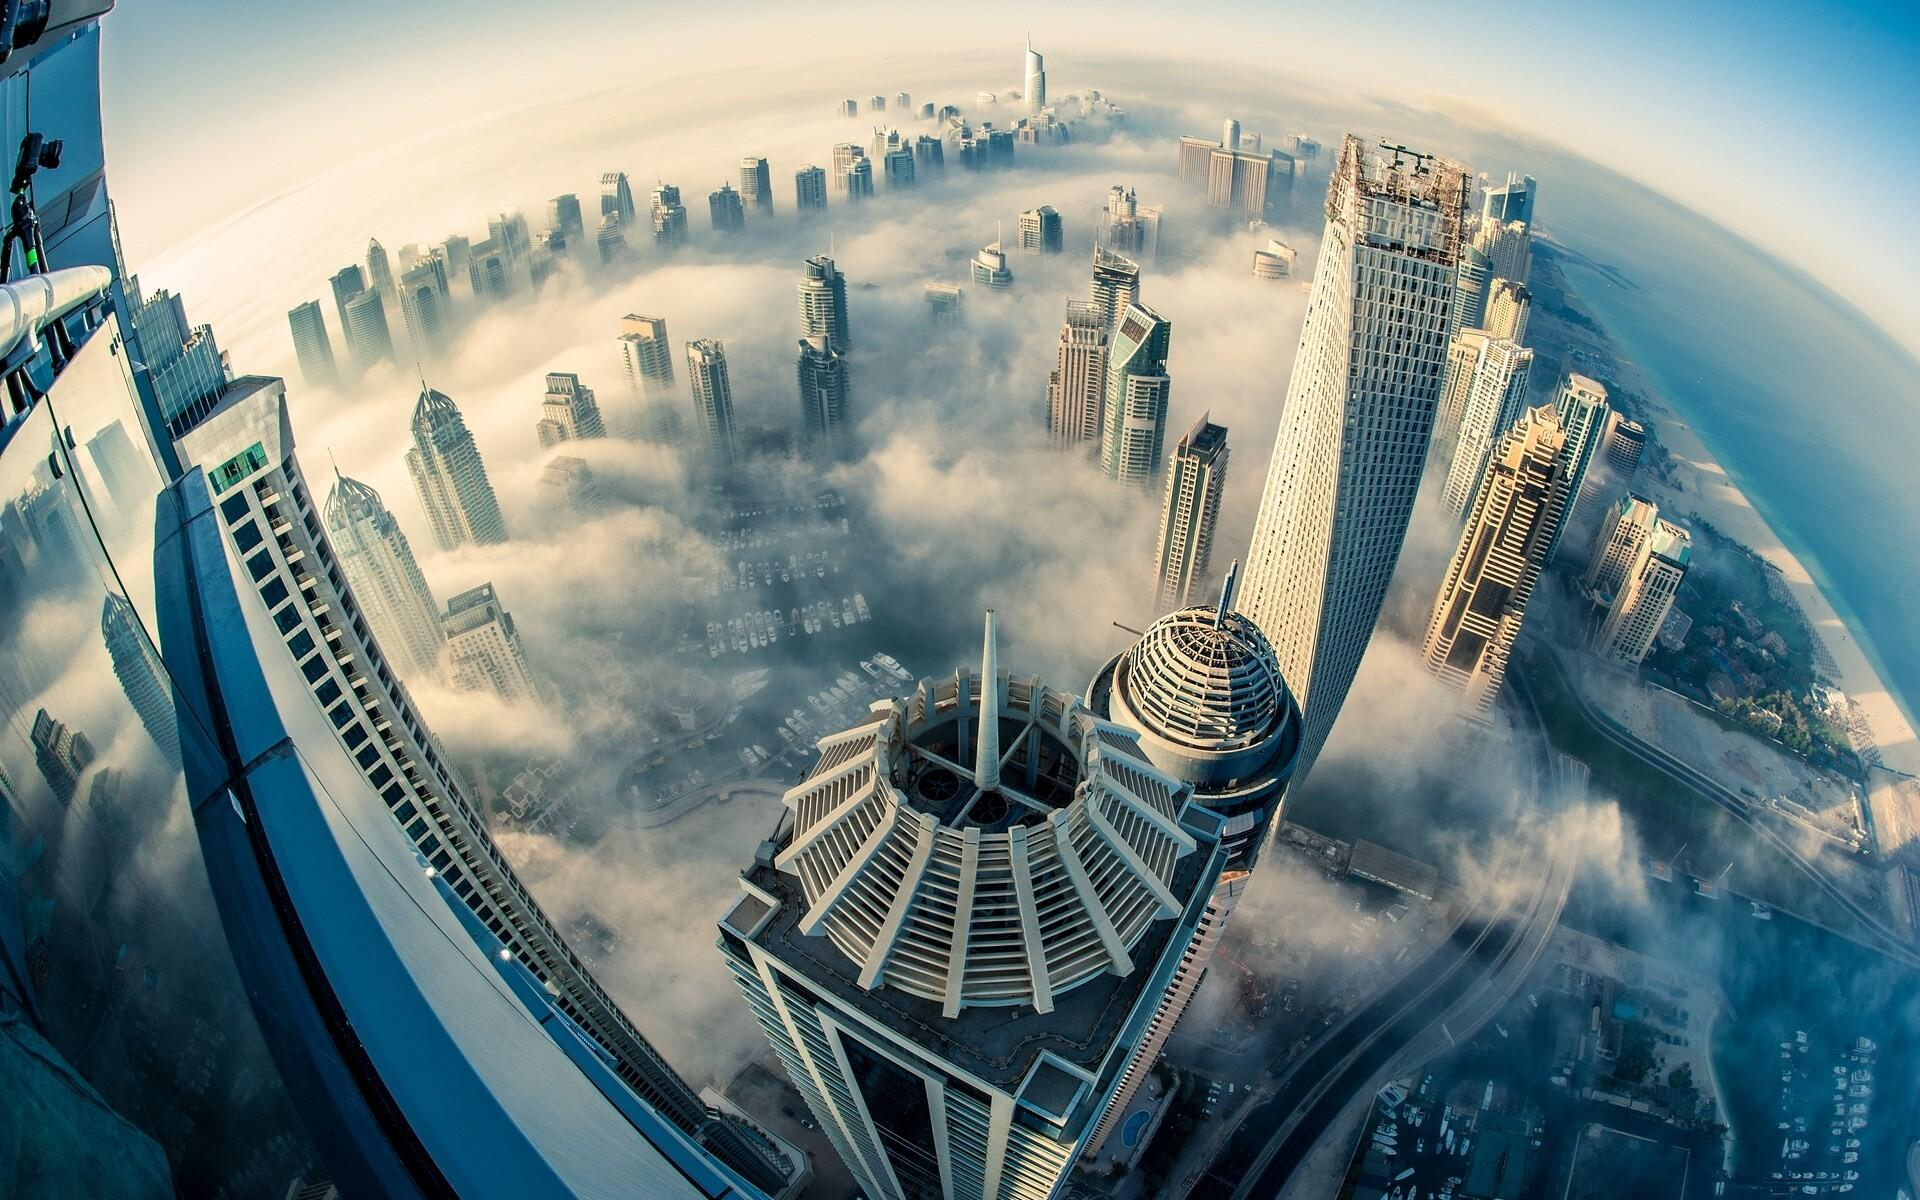 Here's a magnificent aerial view of Dubai http://t.co/gRNxY9xZFe